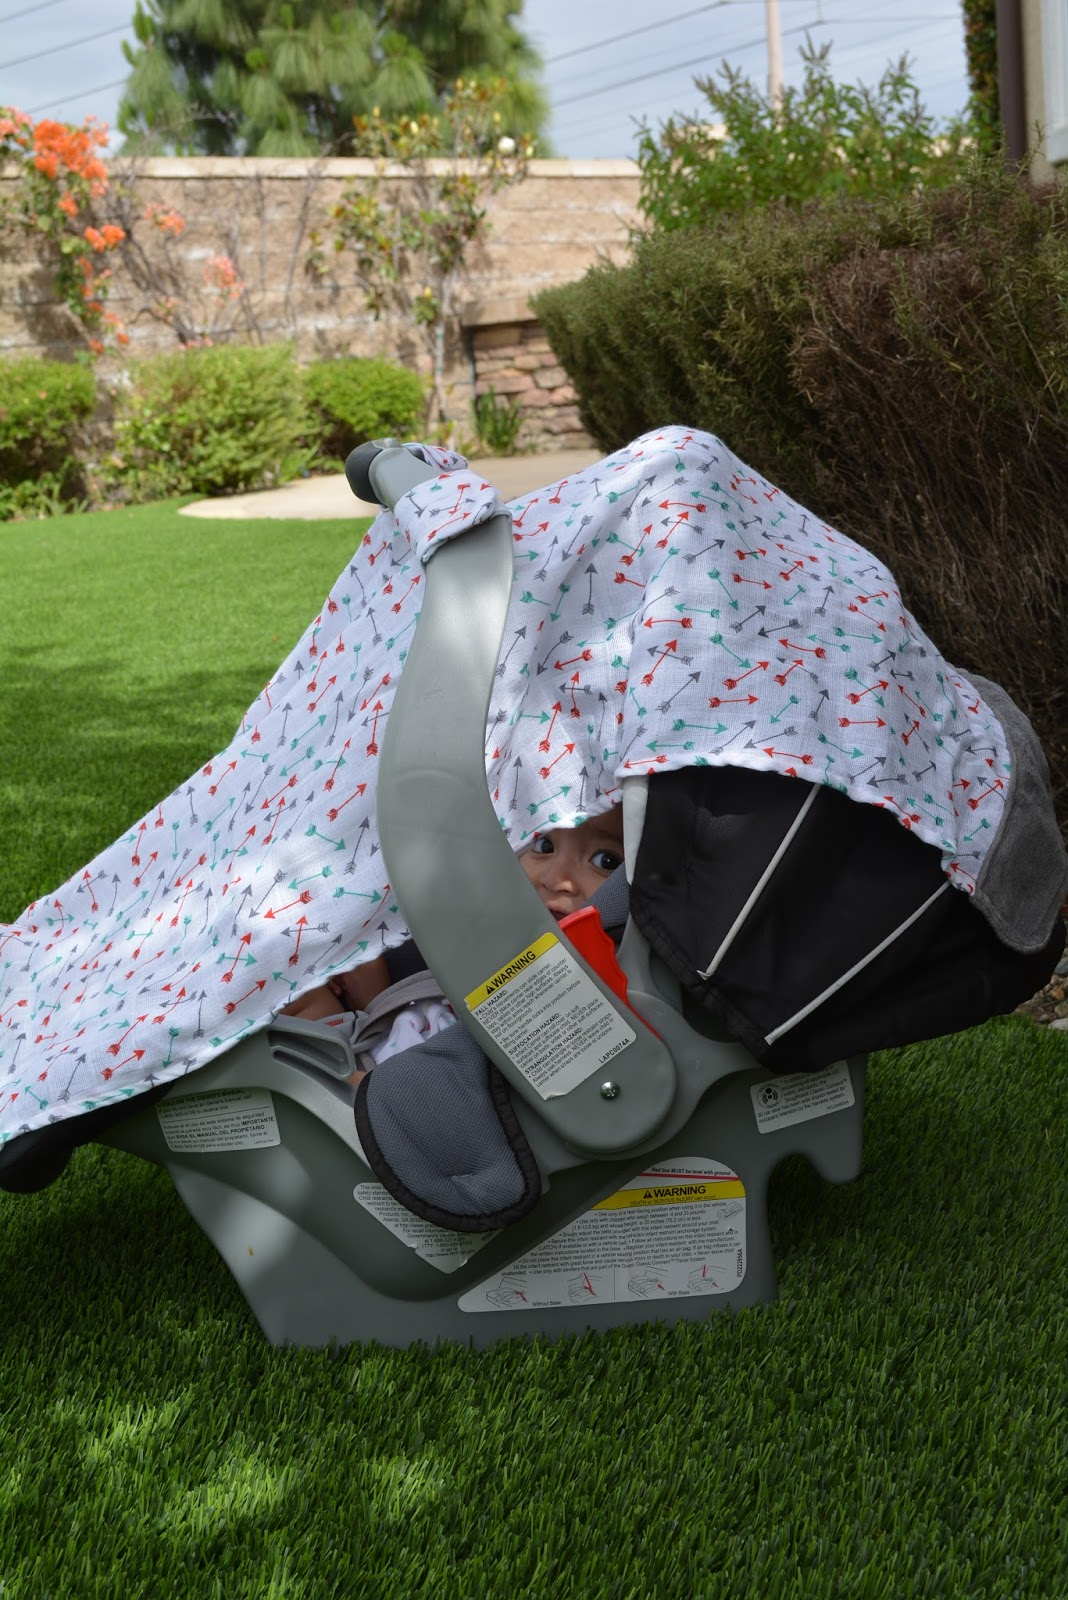 The Itzy Ritzy Infant Car Seat Canopy is also a must buy for any parent. The soft breathable muslin material is lightweight and drapes over car seats ... & being MVP: Itzy Ritzy x Babies